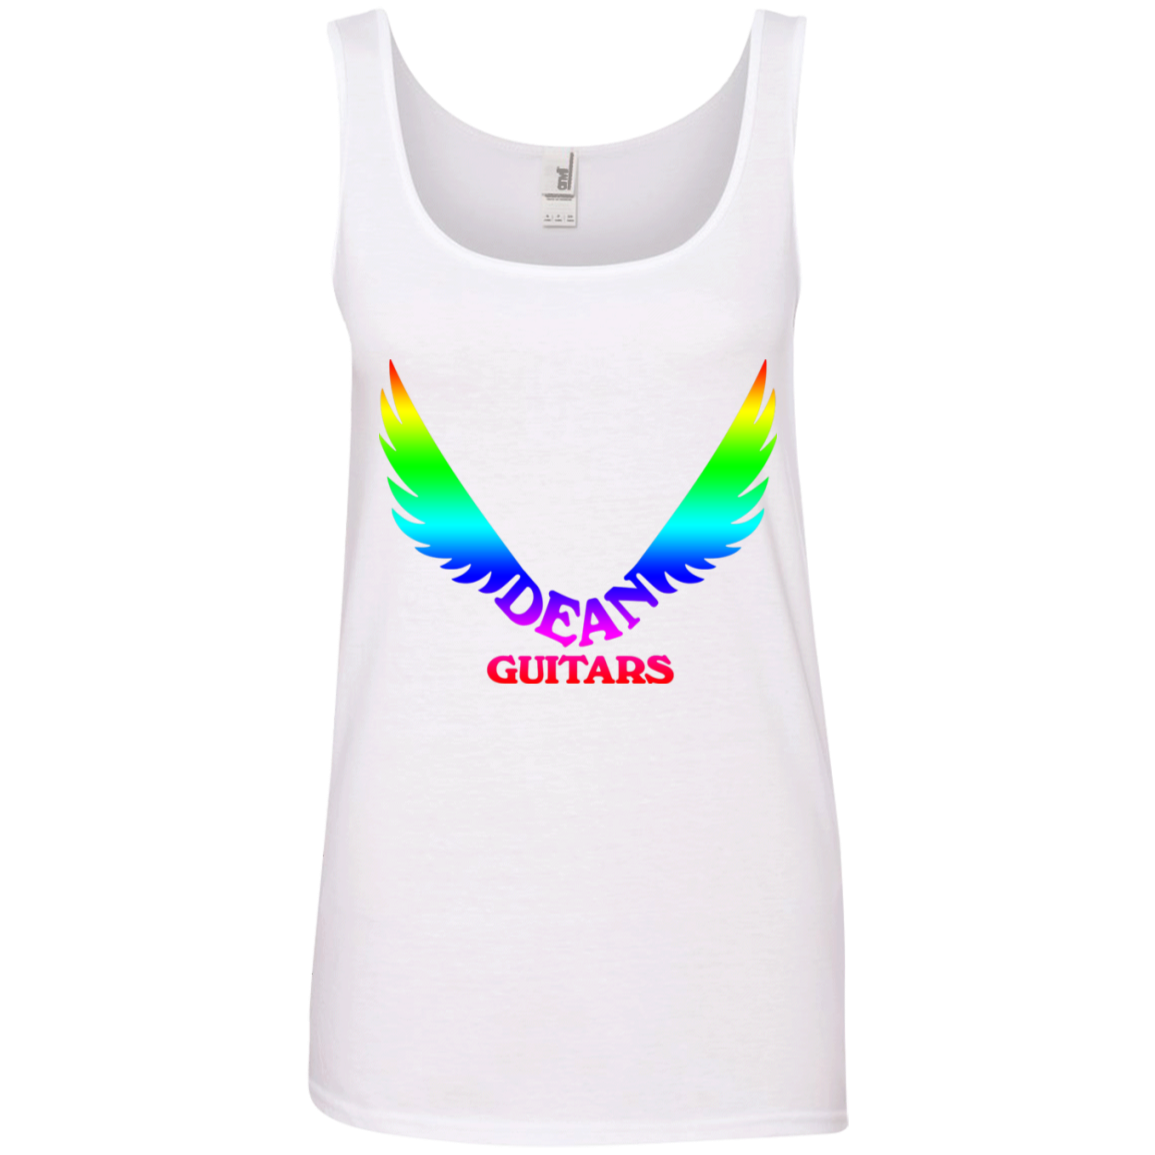 agr dean guitars logo rainbow ringspun tank top agreeable